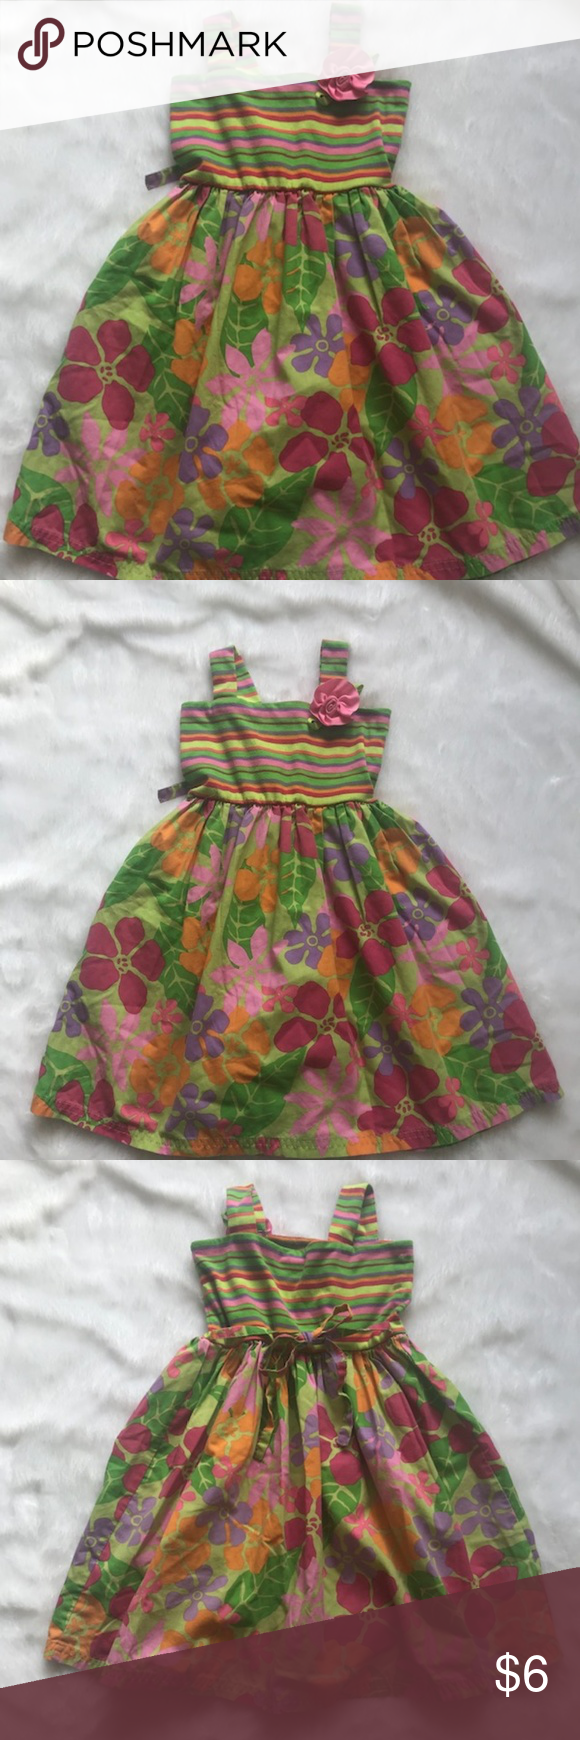 Youngland Island Floral Dress GUC Youngland Island Floral Dress, size 5. Good used condition. The bodice is striped and the skirt has flowers in different shades of pink, purple, and orange against a green background. Rosette on left strap. Ties in back. Some pilling on the bodice as evidenced in the photograph above. Great for summer or a tropical vacation! Bodice: 96% Polyester, 4% Spandex. Skirt: 55% Cotton, 45% Polyester. From a pet-free, smoke-free home. Check out my other little girl cloth